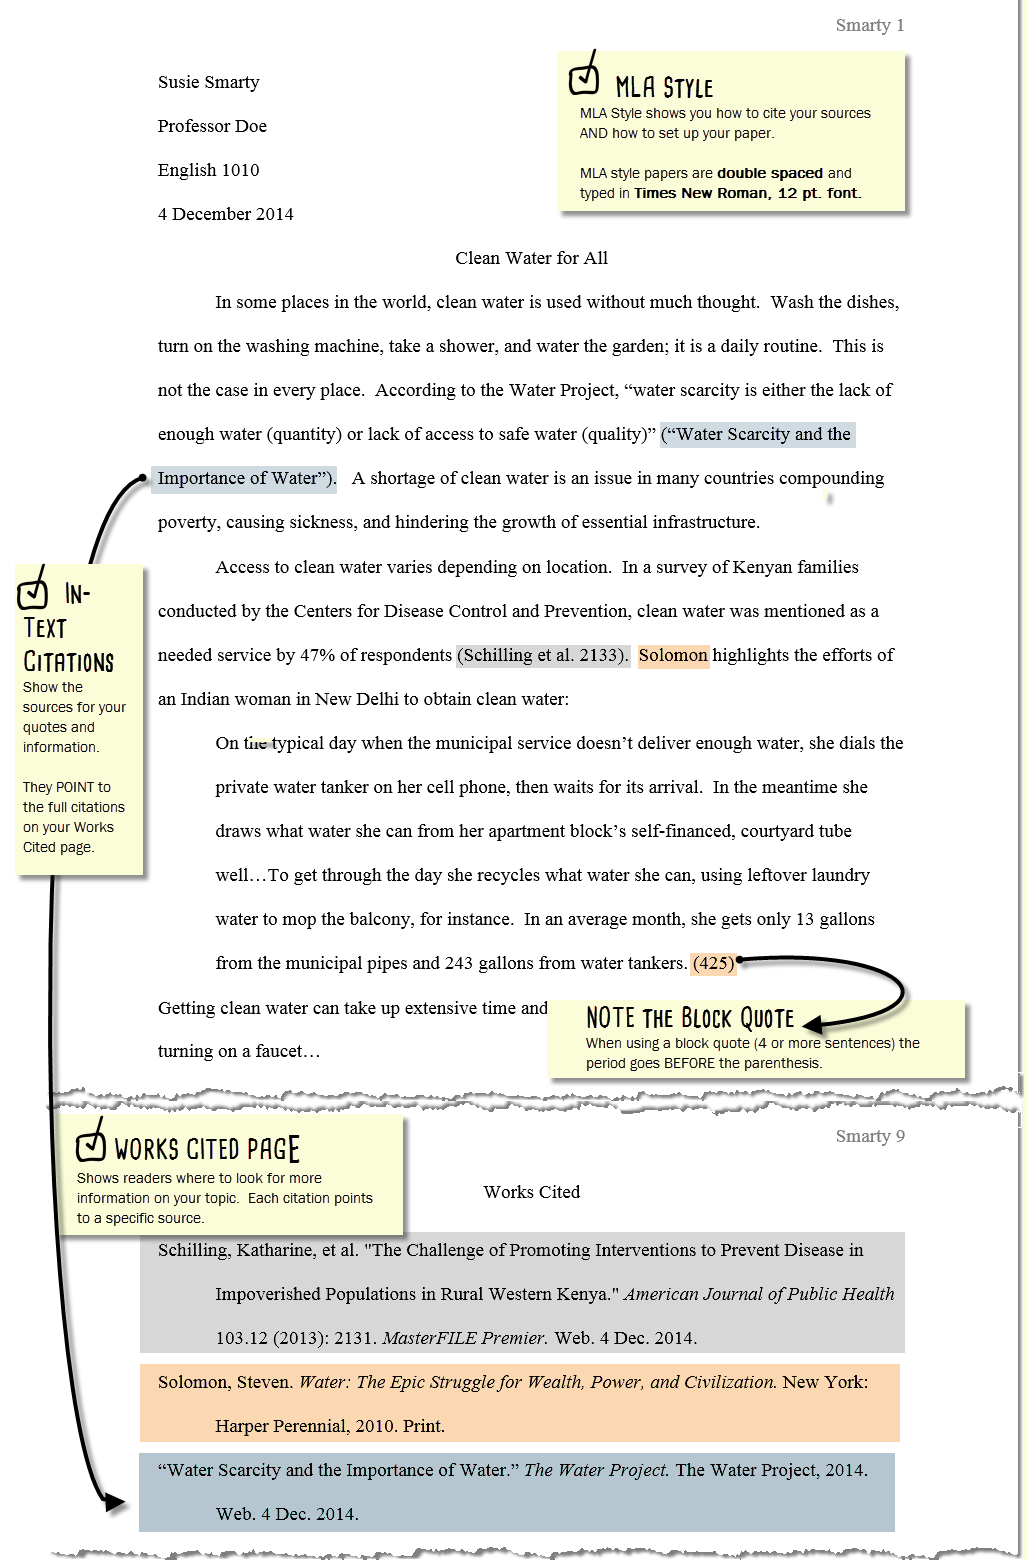 mla citation thesis Help with common issues and questions with apa 6th ed citation style.